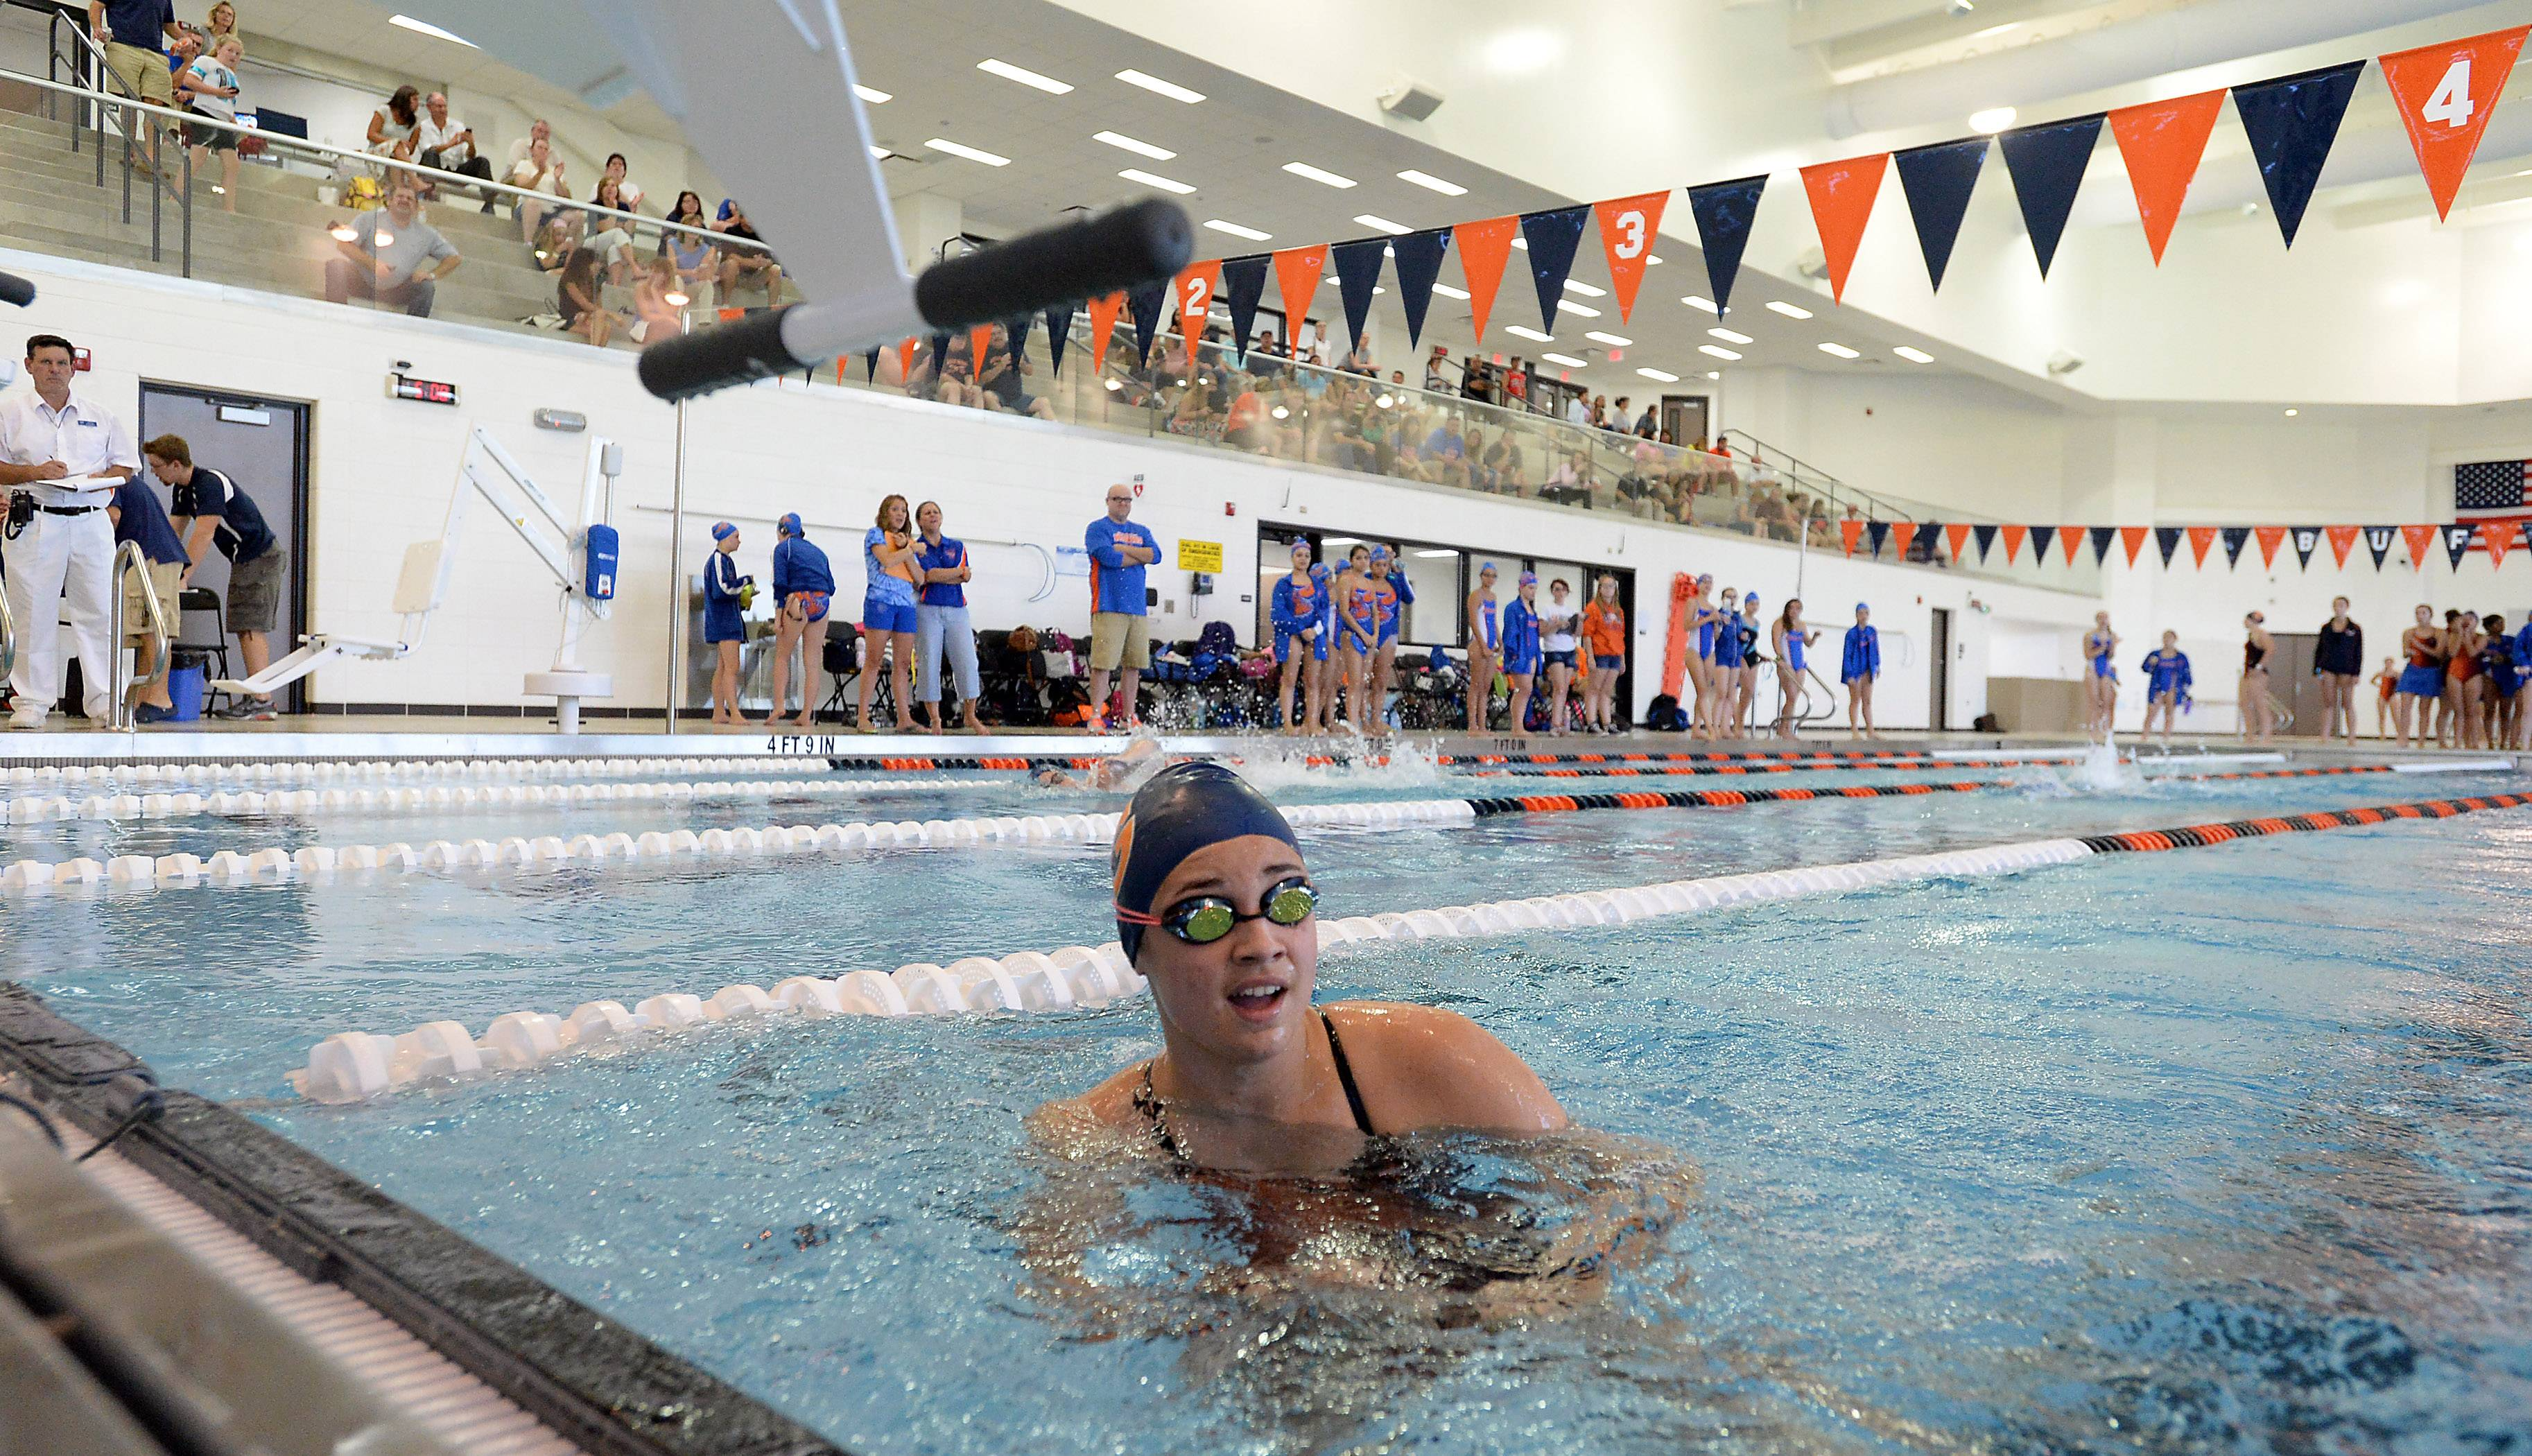 Sarah Morosan of Buffalo Grove checks out her winning time in the 50-yard freestyle during the first varsity meet held in Buffalo Grove's new pool Thursday.